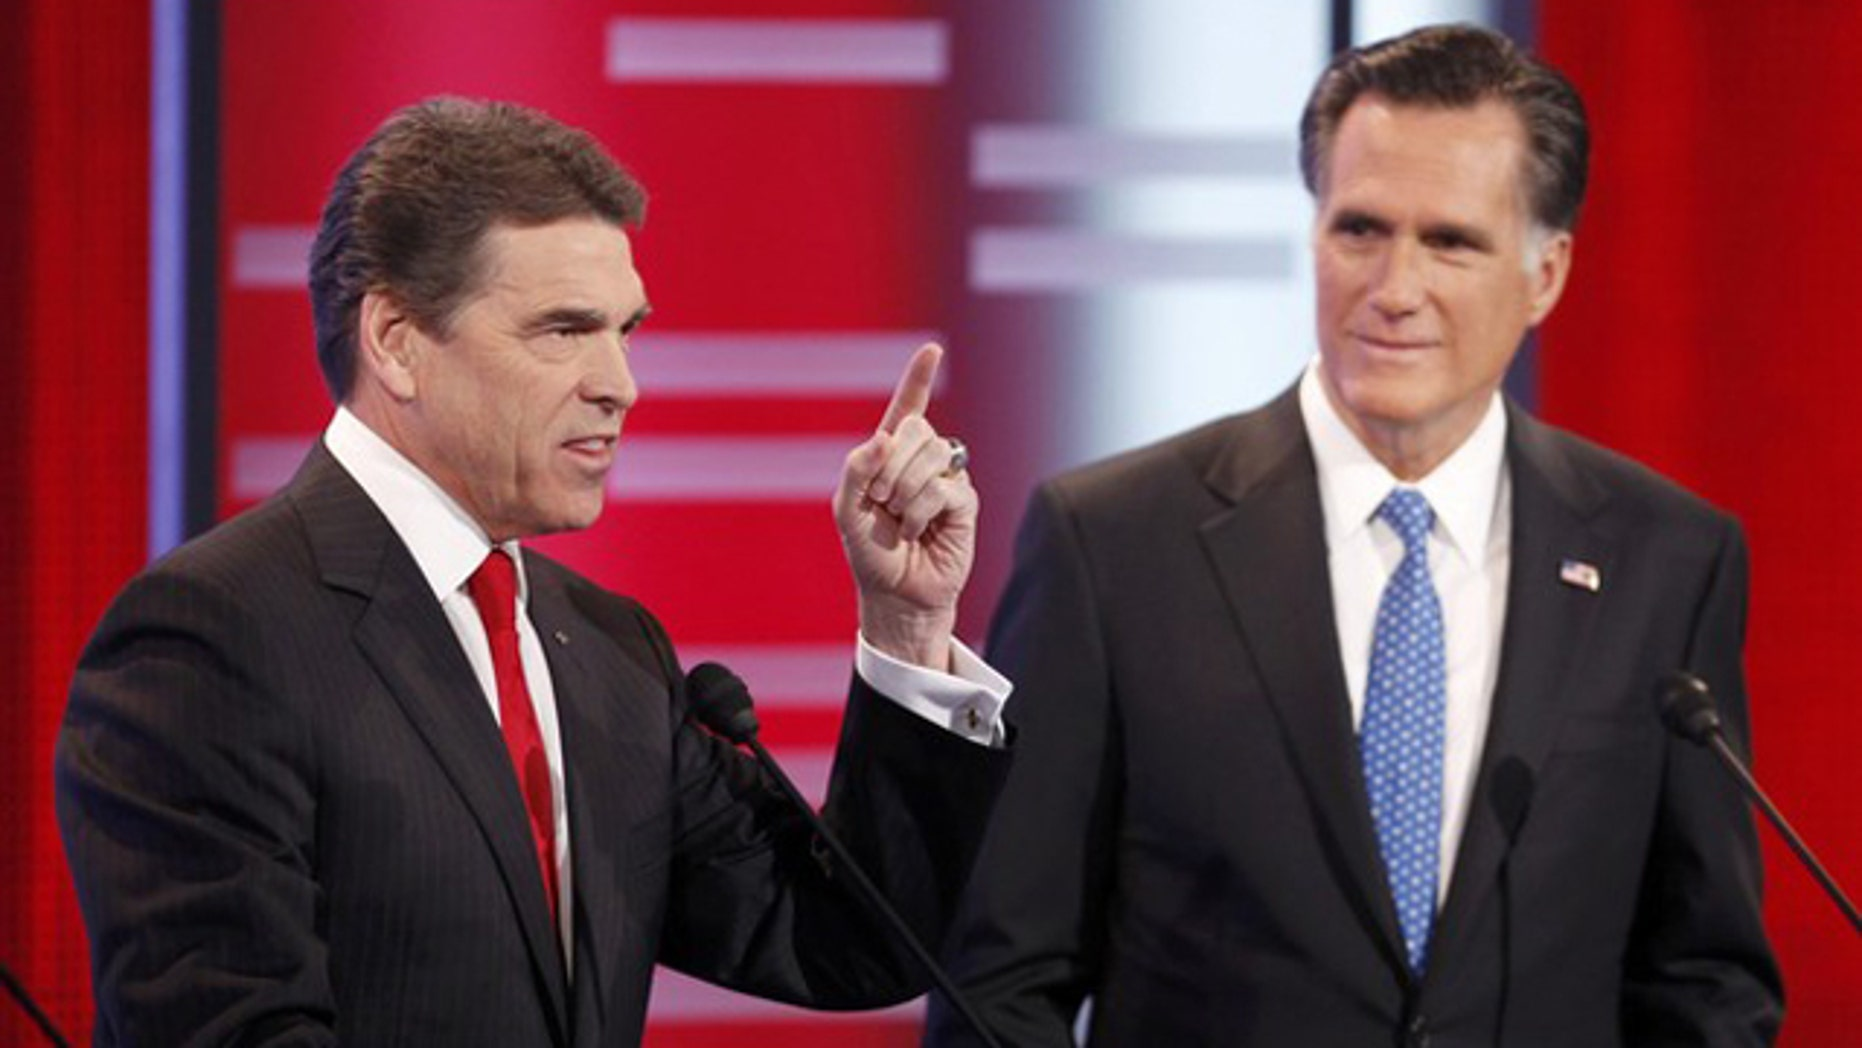 Dec. 10, 2011: Republican presidential candidate Texas Gov. Rick Perry makes a point as former Massachusetts Gov. Mitt Romney looks on during the Republican Party presidential candidates debate at Drake University in Des Moines, Iowa.